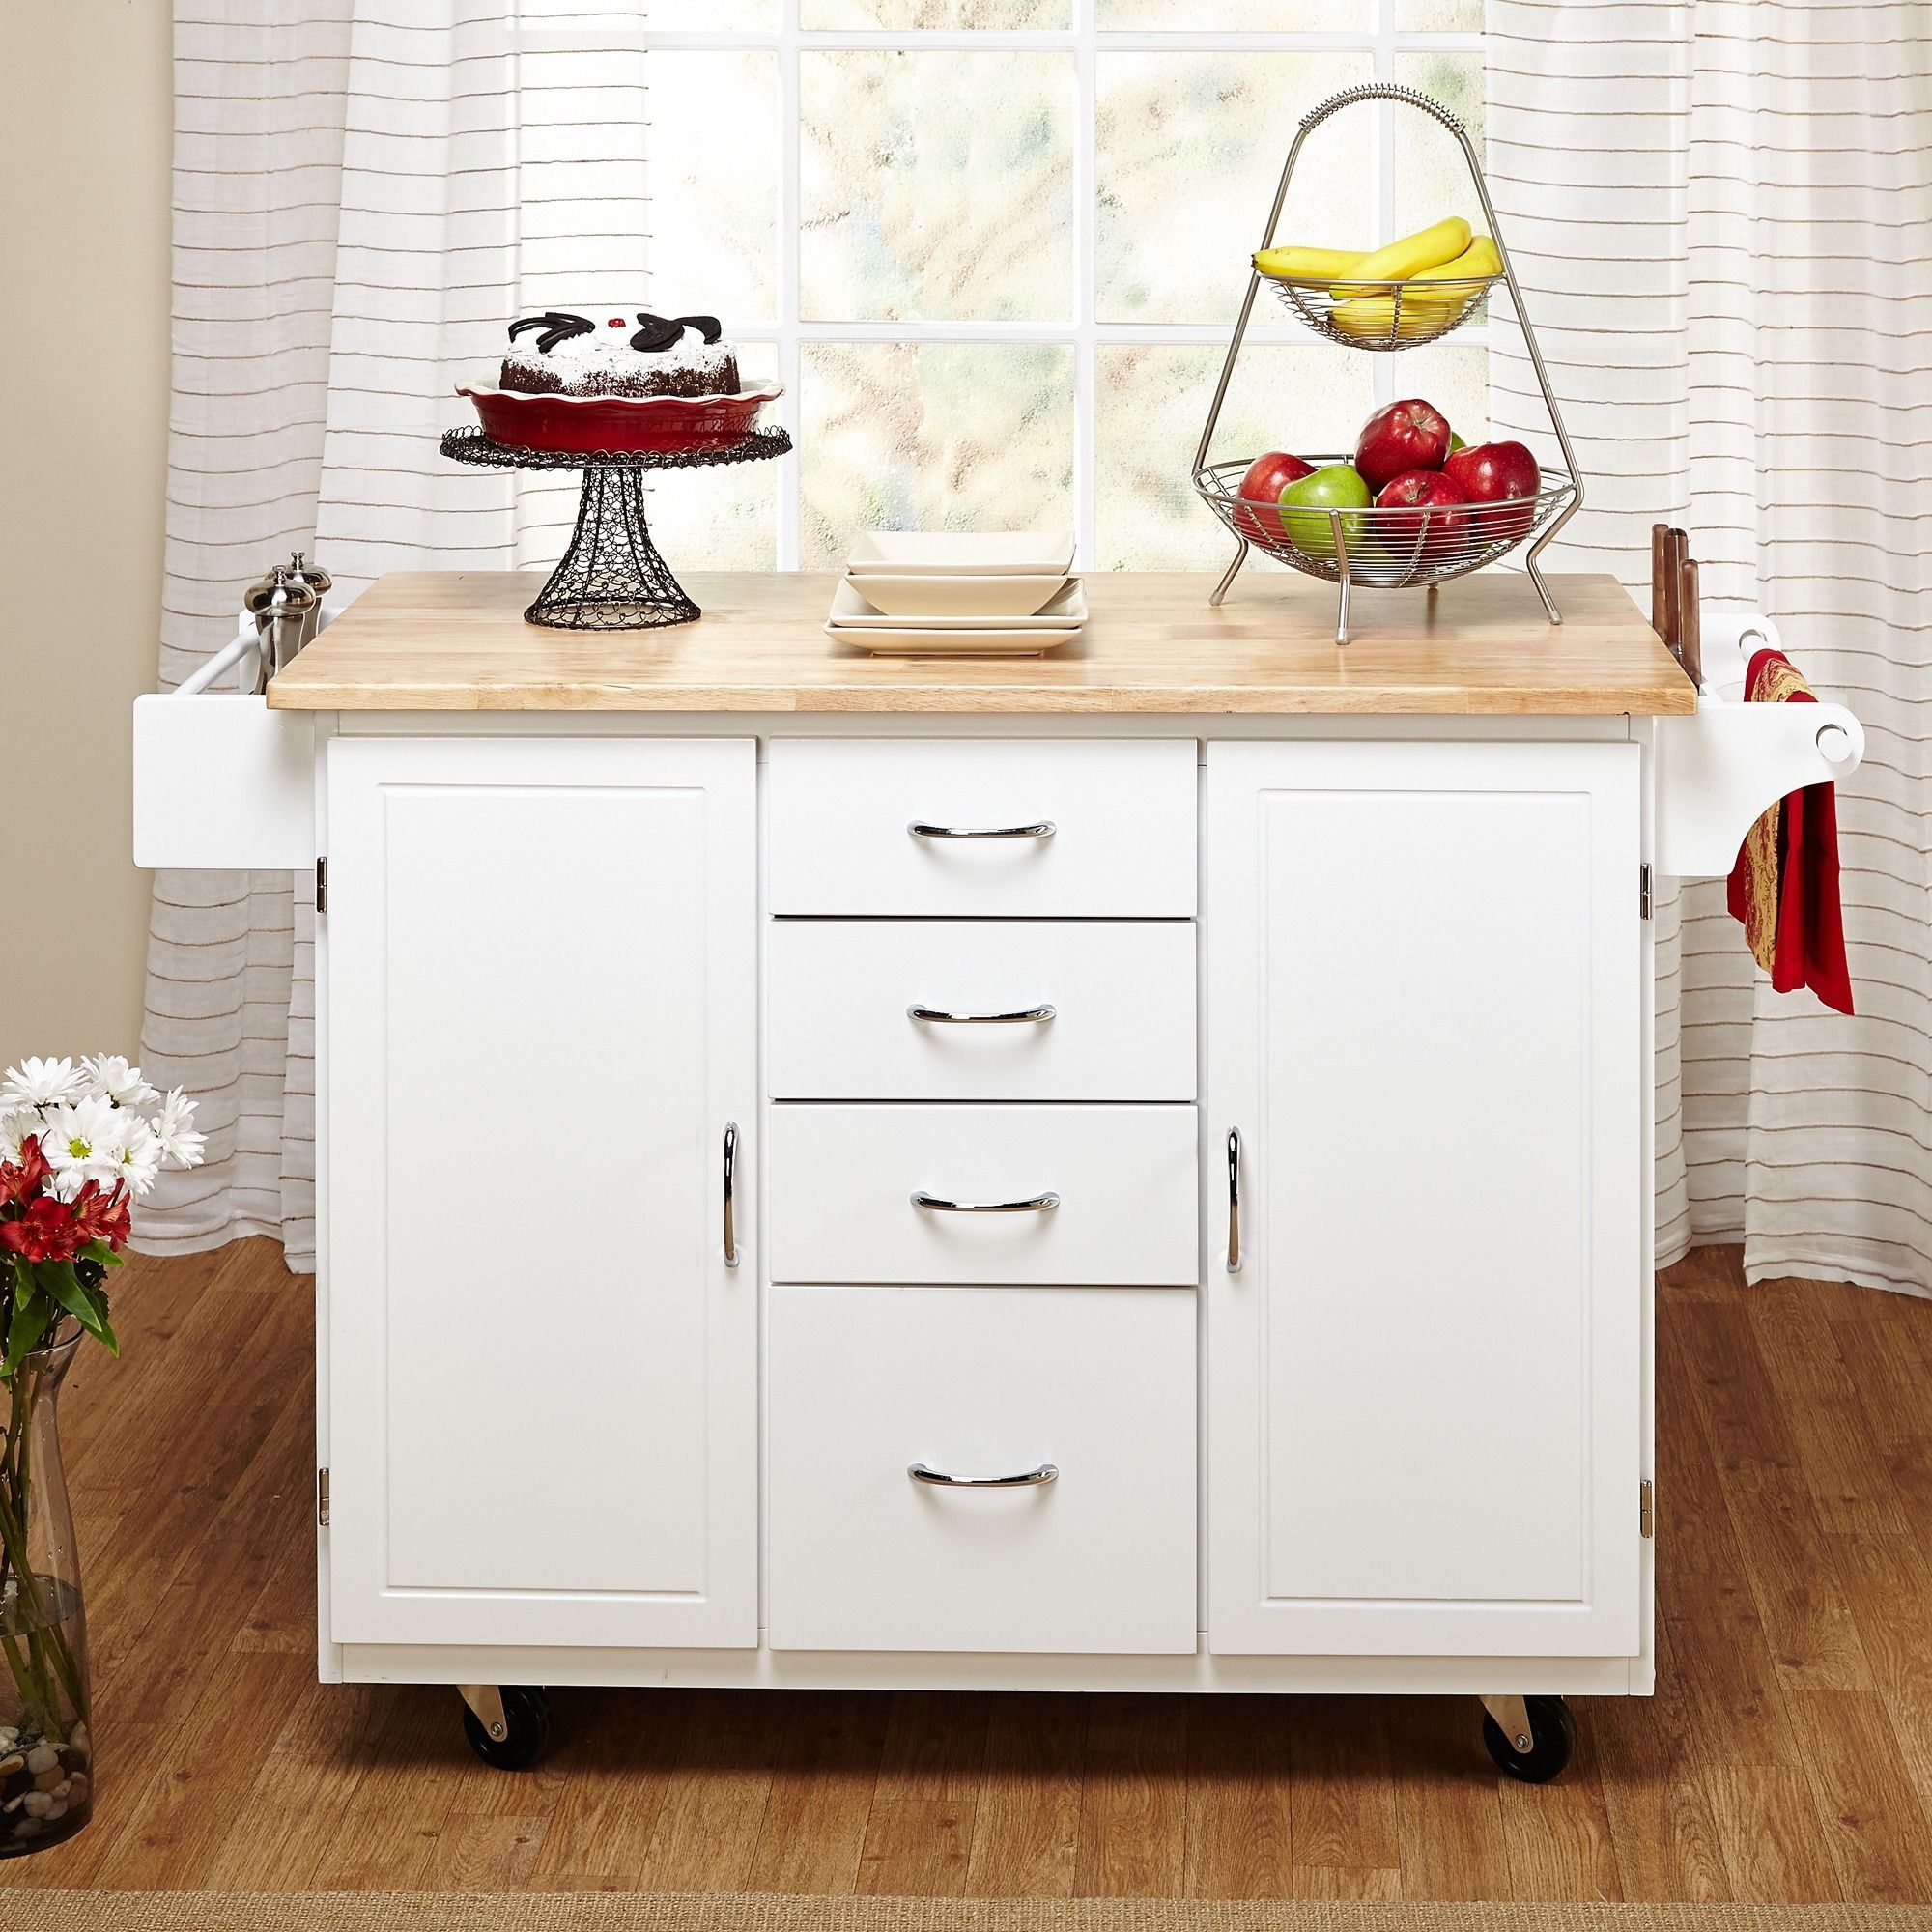 Give yourself an extra storage space with this charming country cottage kitchen cart set on